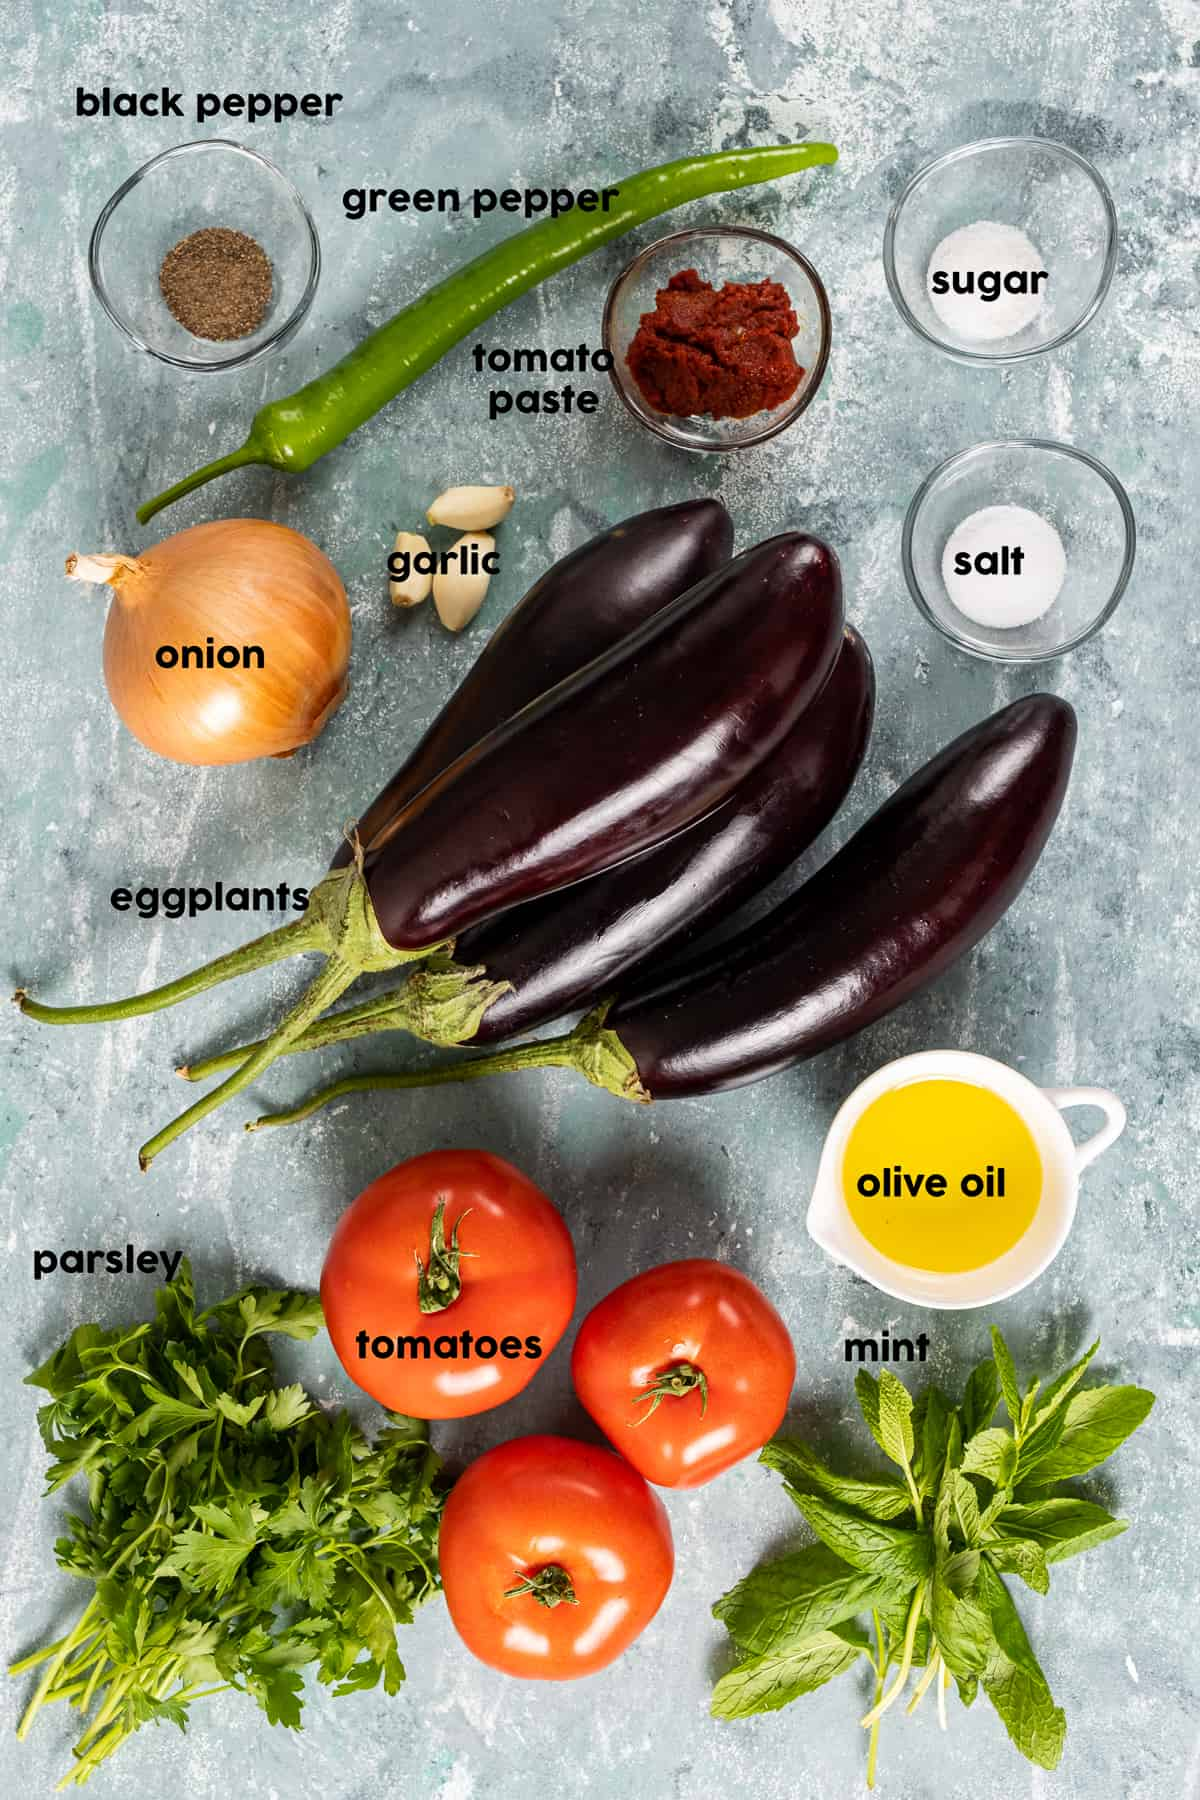 Eggplants, a green pepper, an onion, a bunch of parsley and mint, olive oil, garlic, tomato paste and spices in mini bowls on a grey background.